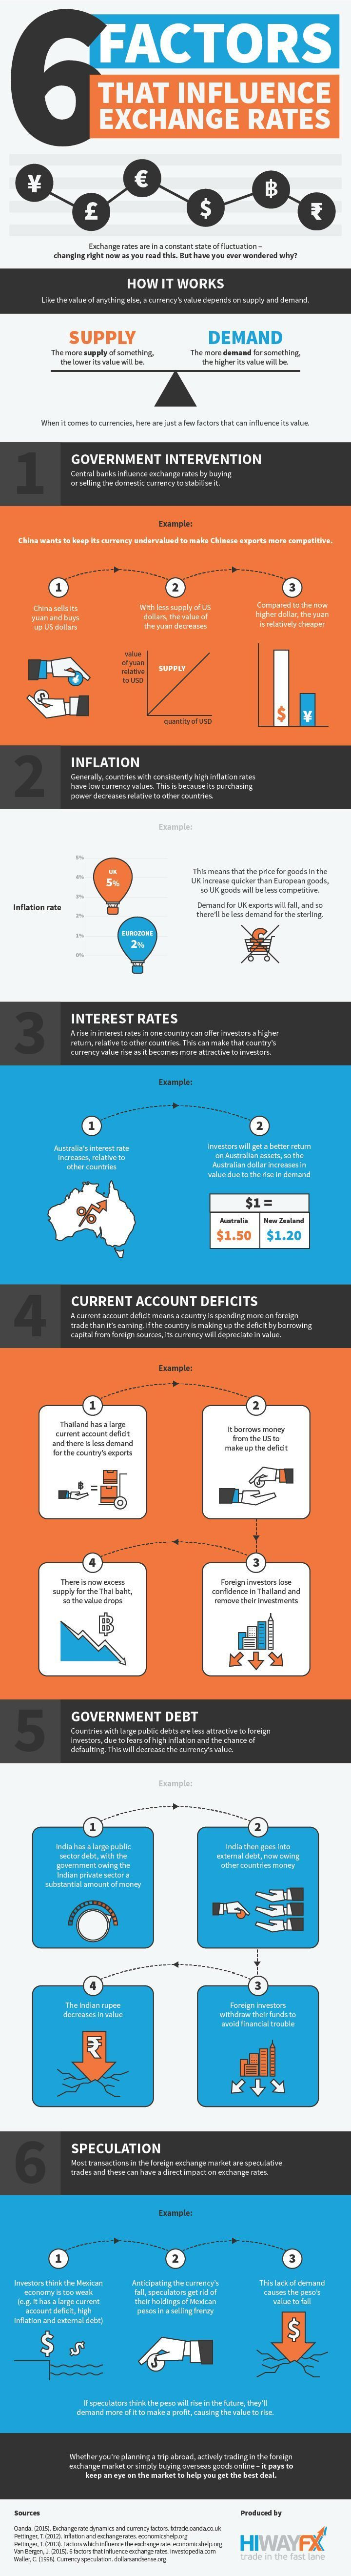 6 Factors that Influence Exchange Rates #infographic #Finance #Money #ExchangeRates